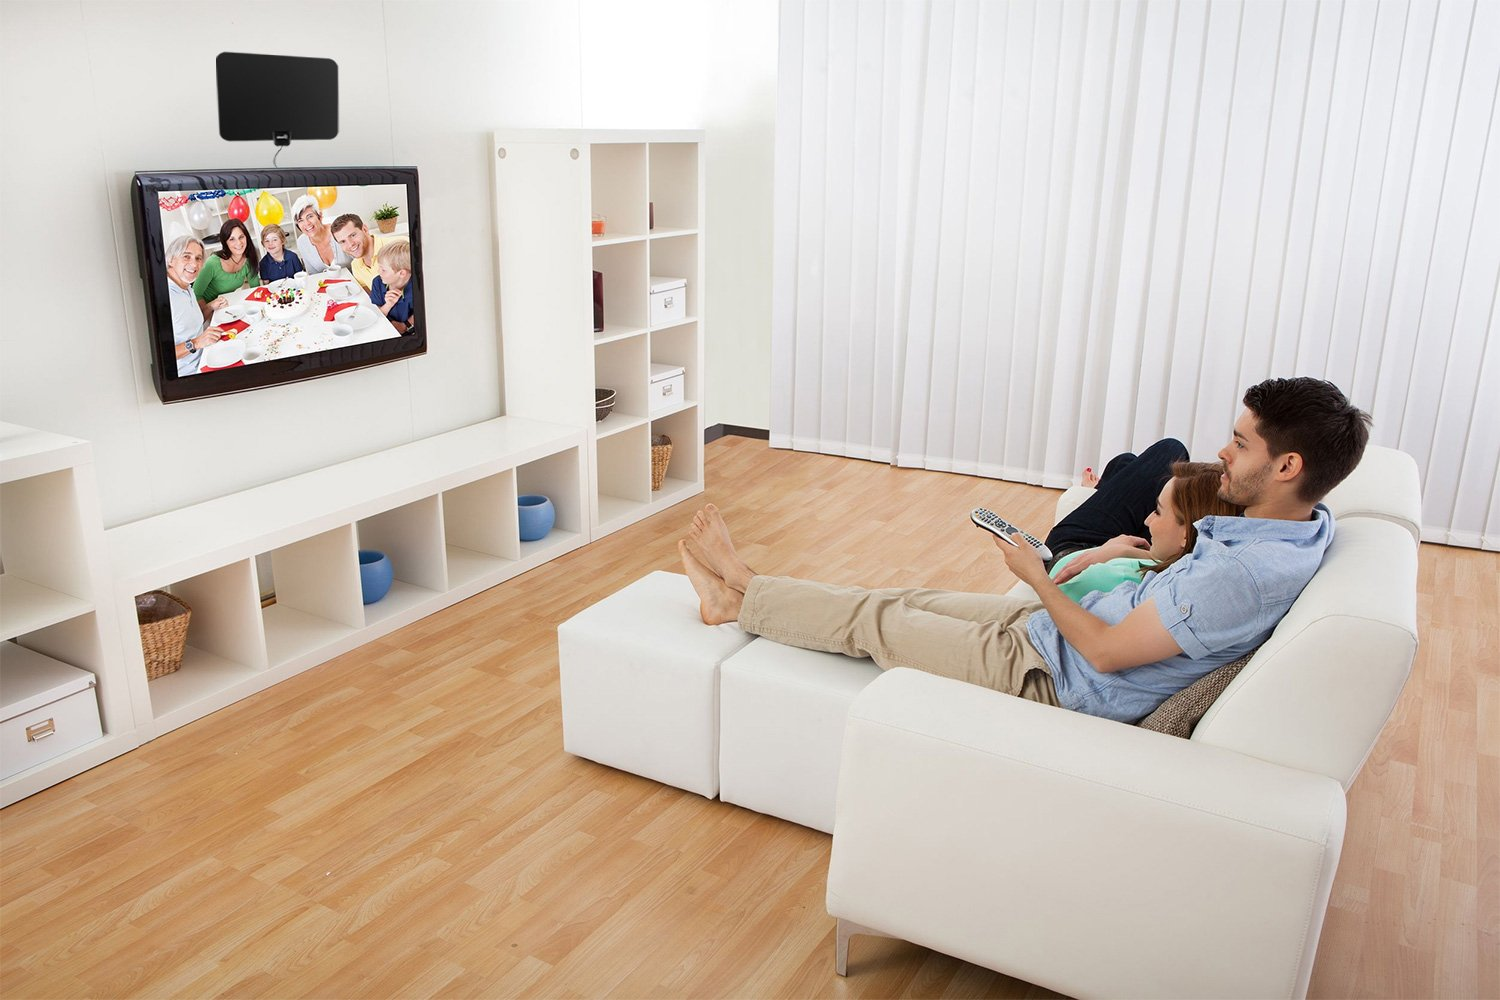 Antenna Tv Home Design on home tv wiring diagram, home fireplace, home floor construction, home tv transmitter,